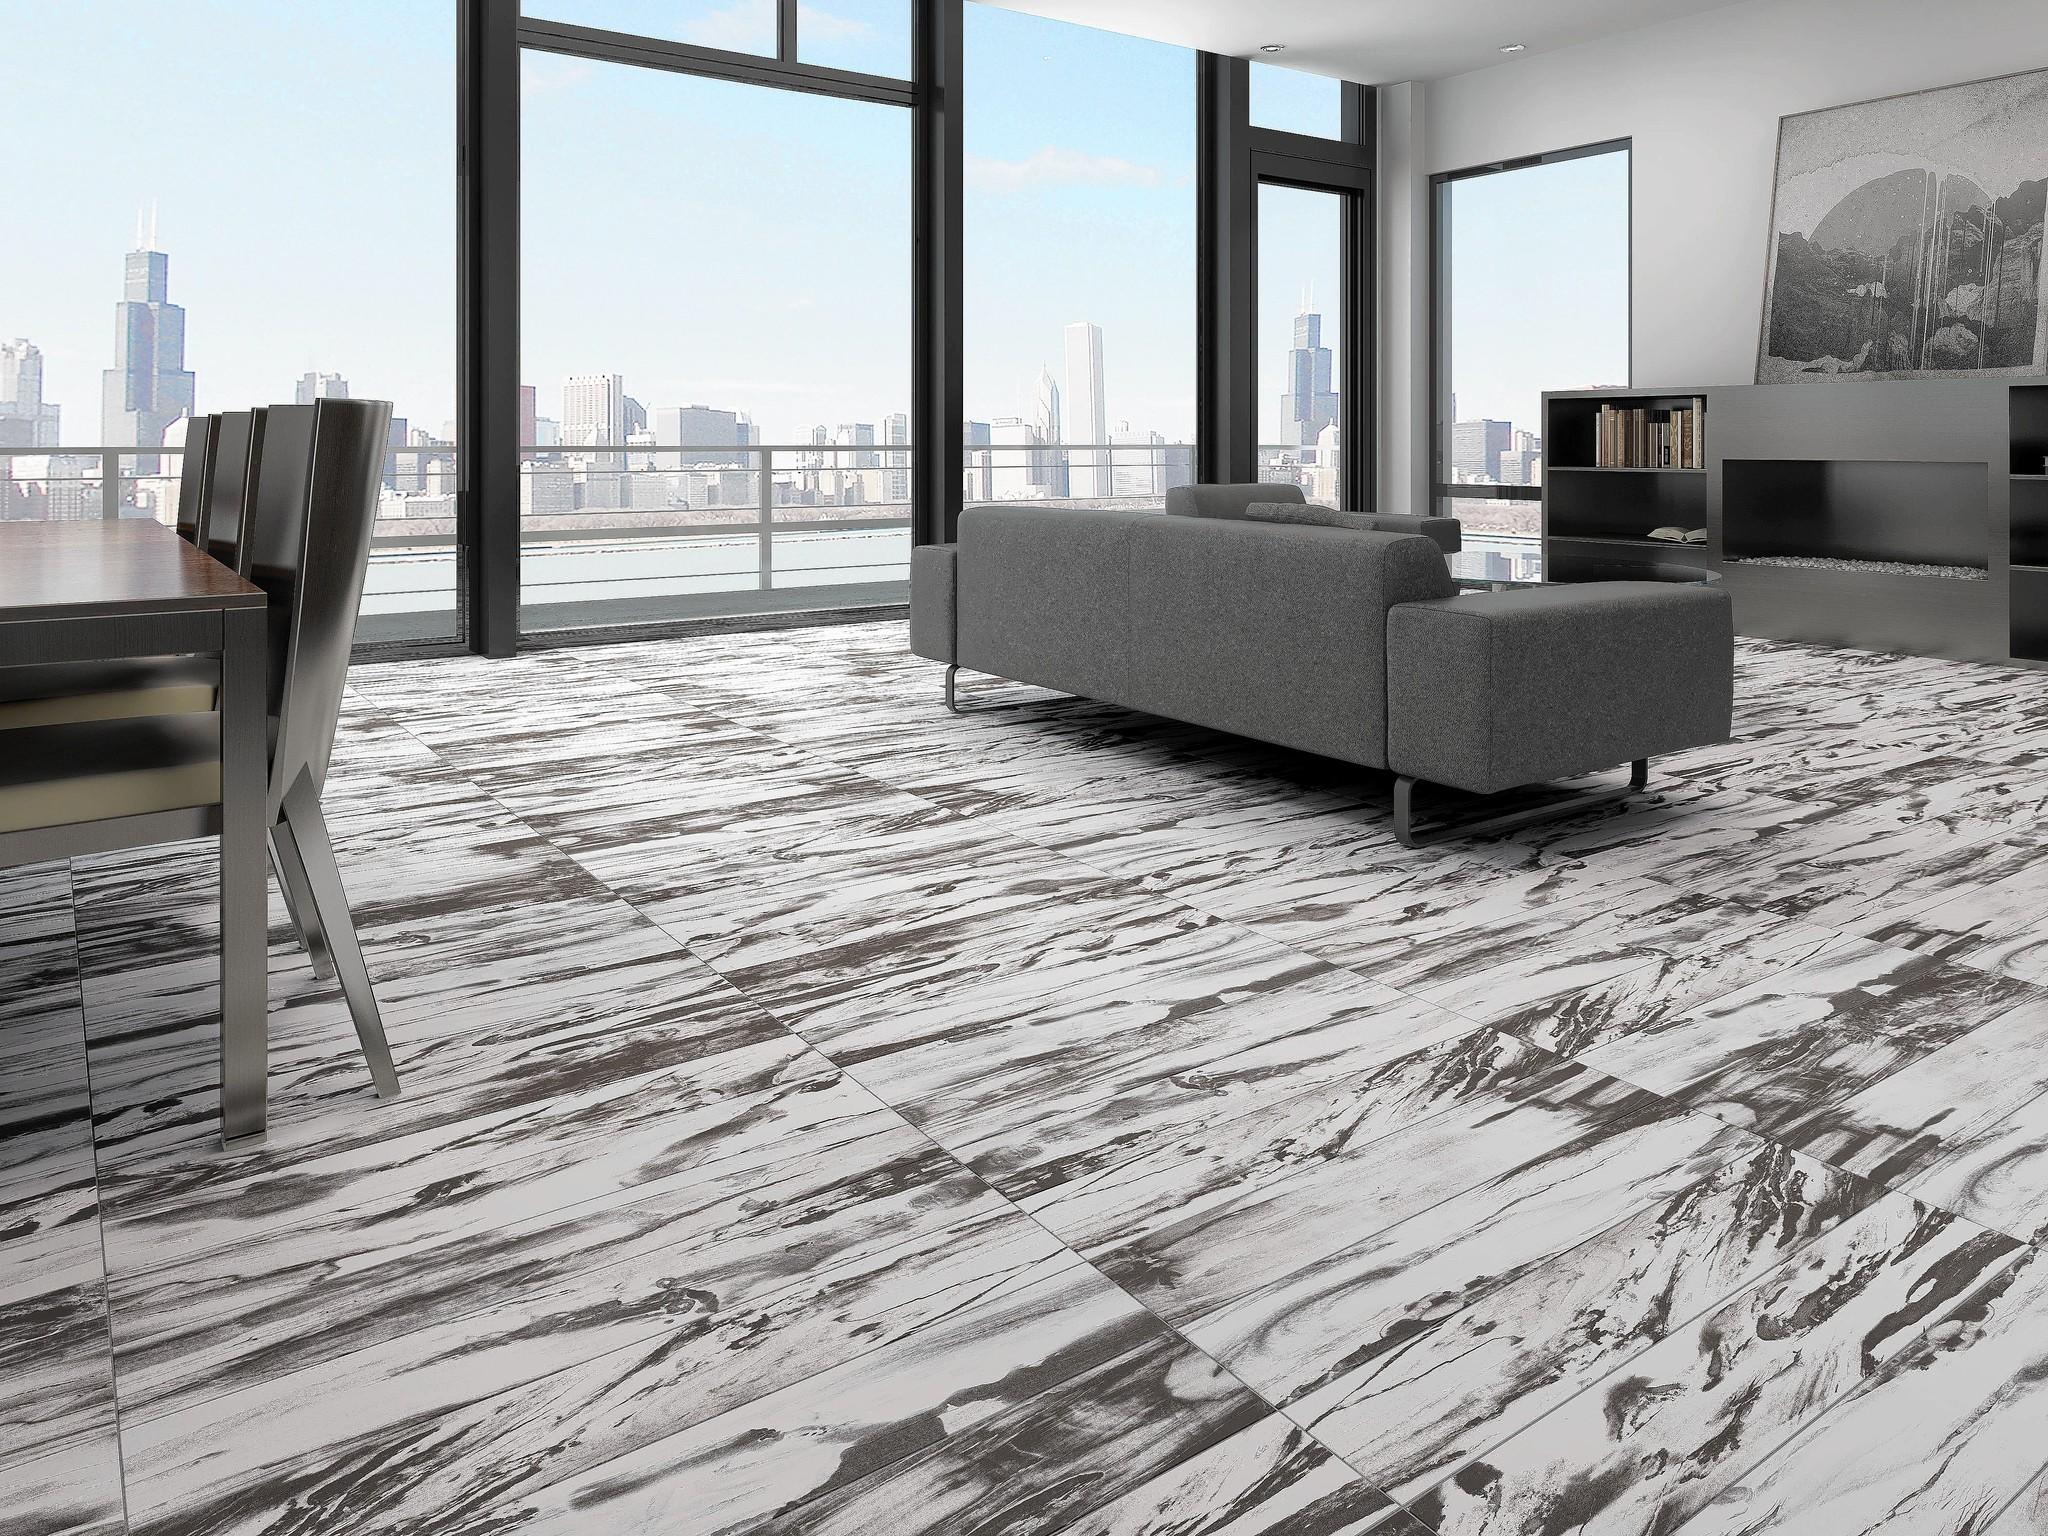 Modena glazed porcelain is a recreation of petrified wood by Emser tile. Shown in alder, the flooring also comes in cedar, linden, spruce and elm colors.